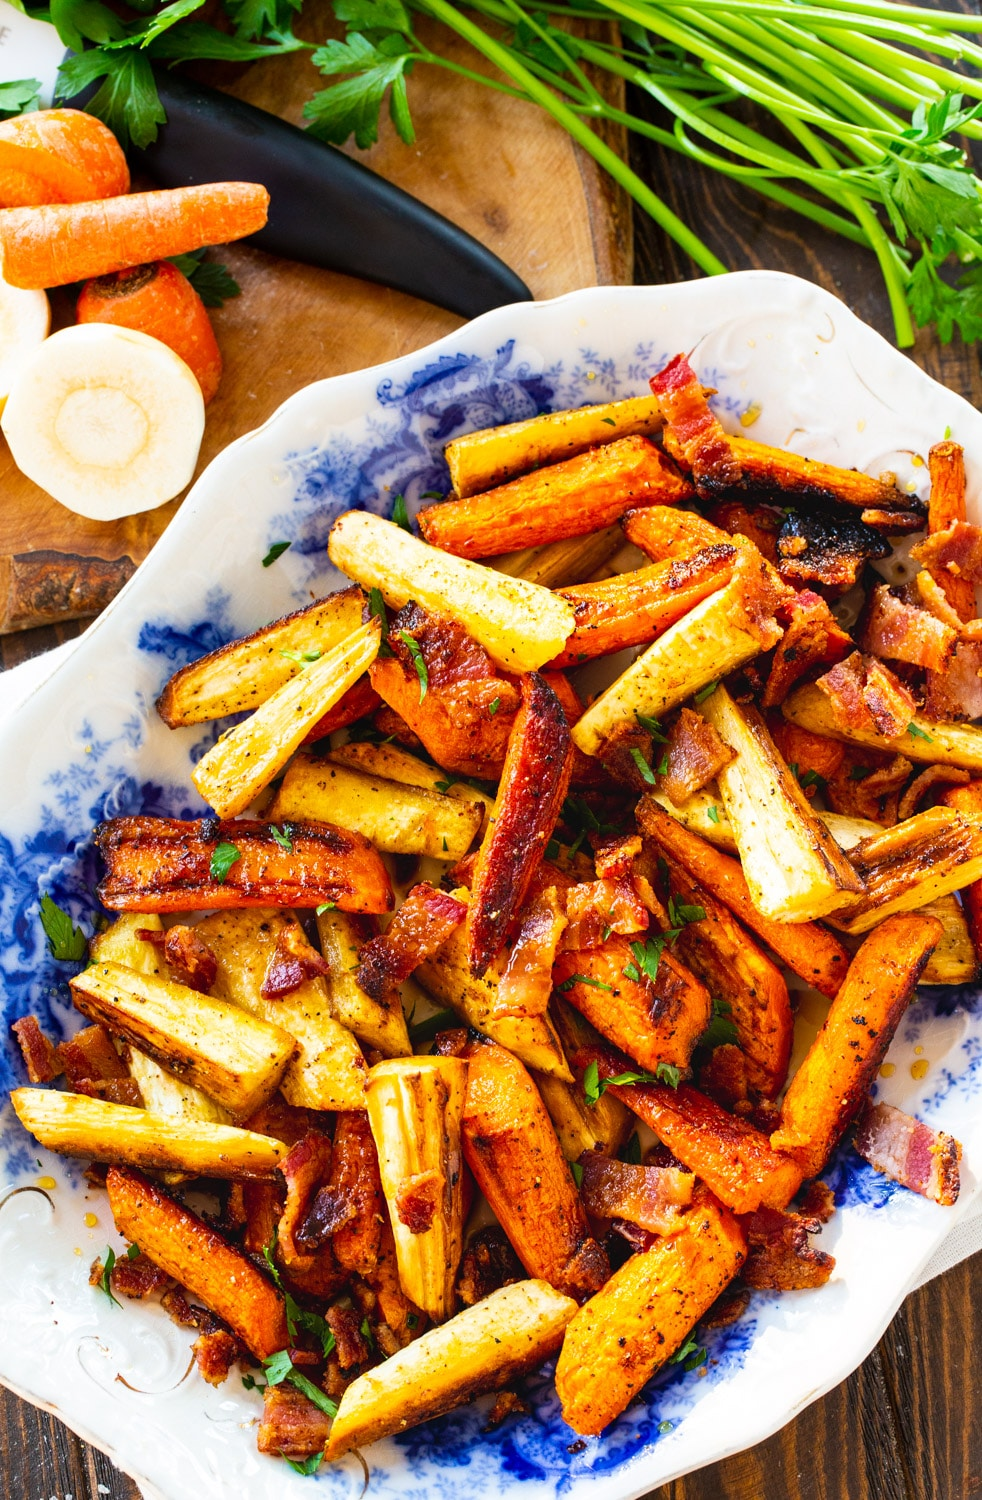 Roasted Carrots and Parsnips on platter with fresh carrots and parsnips next to it.